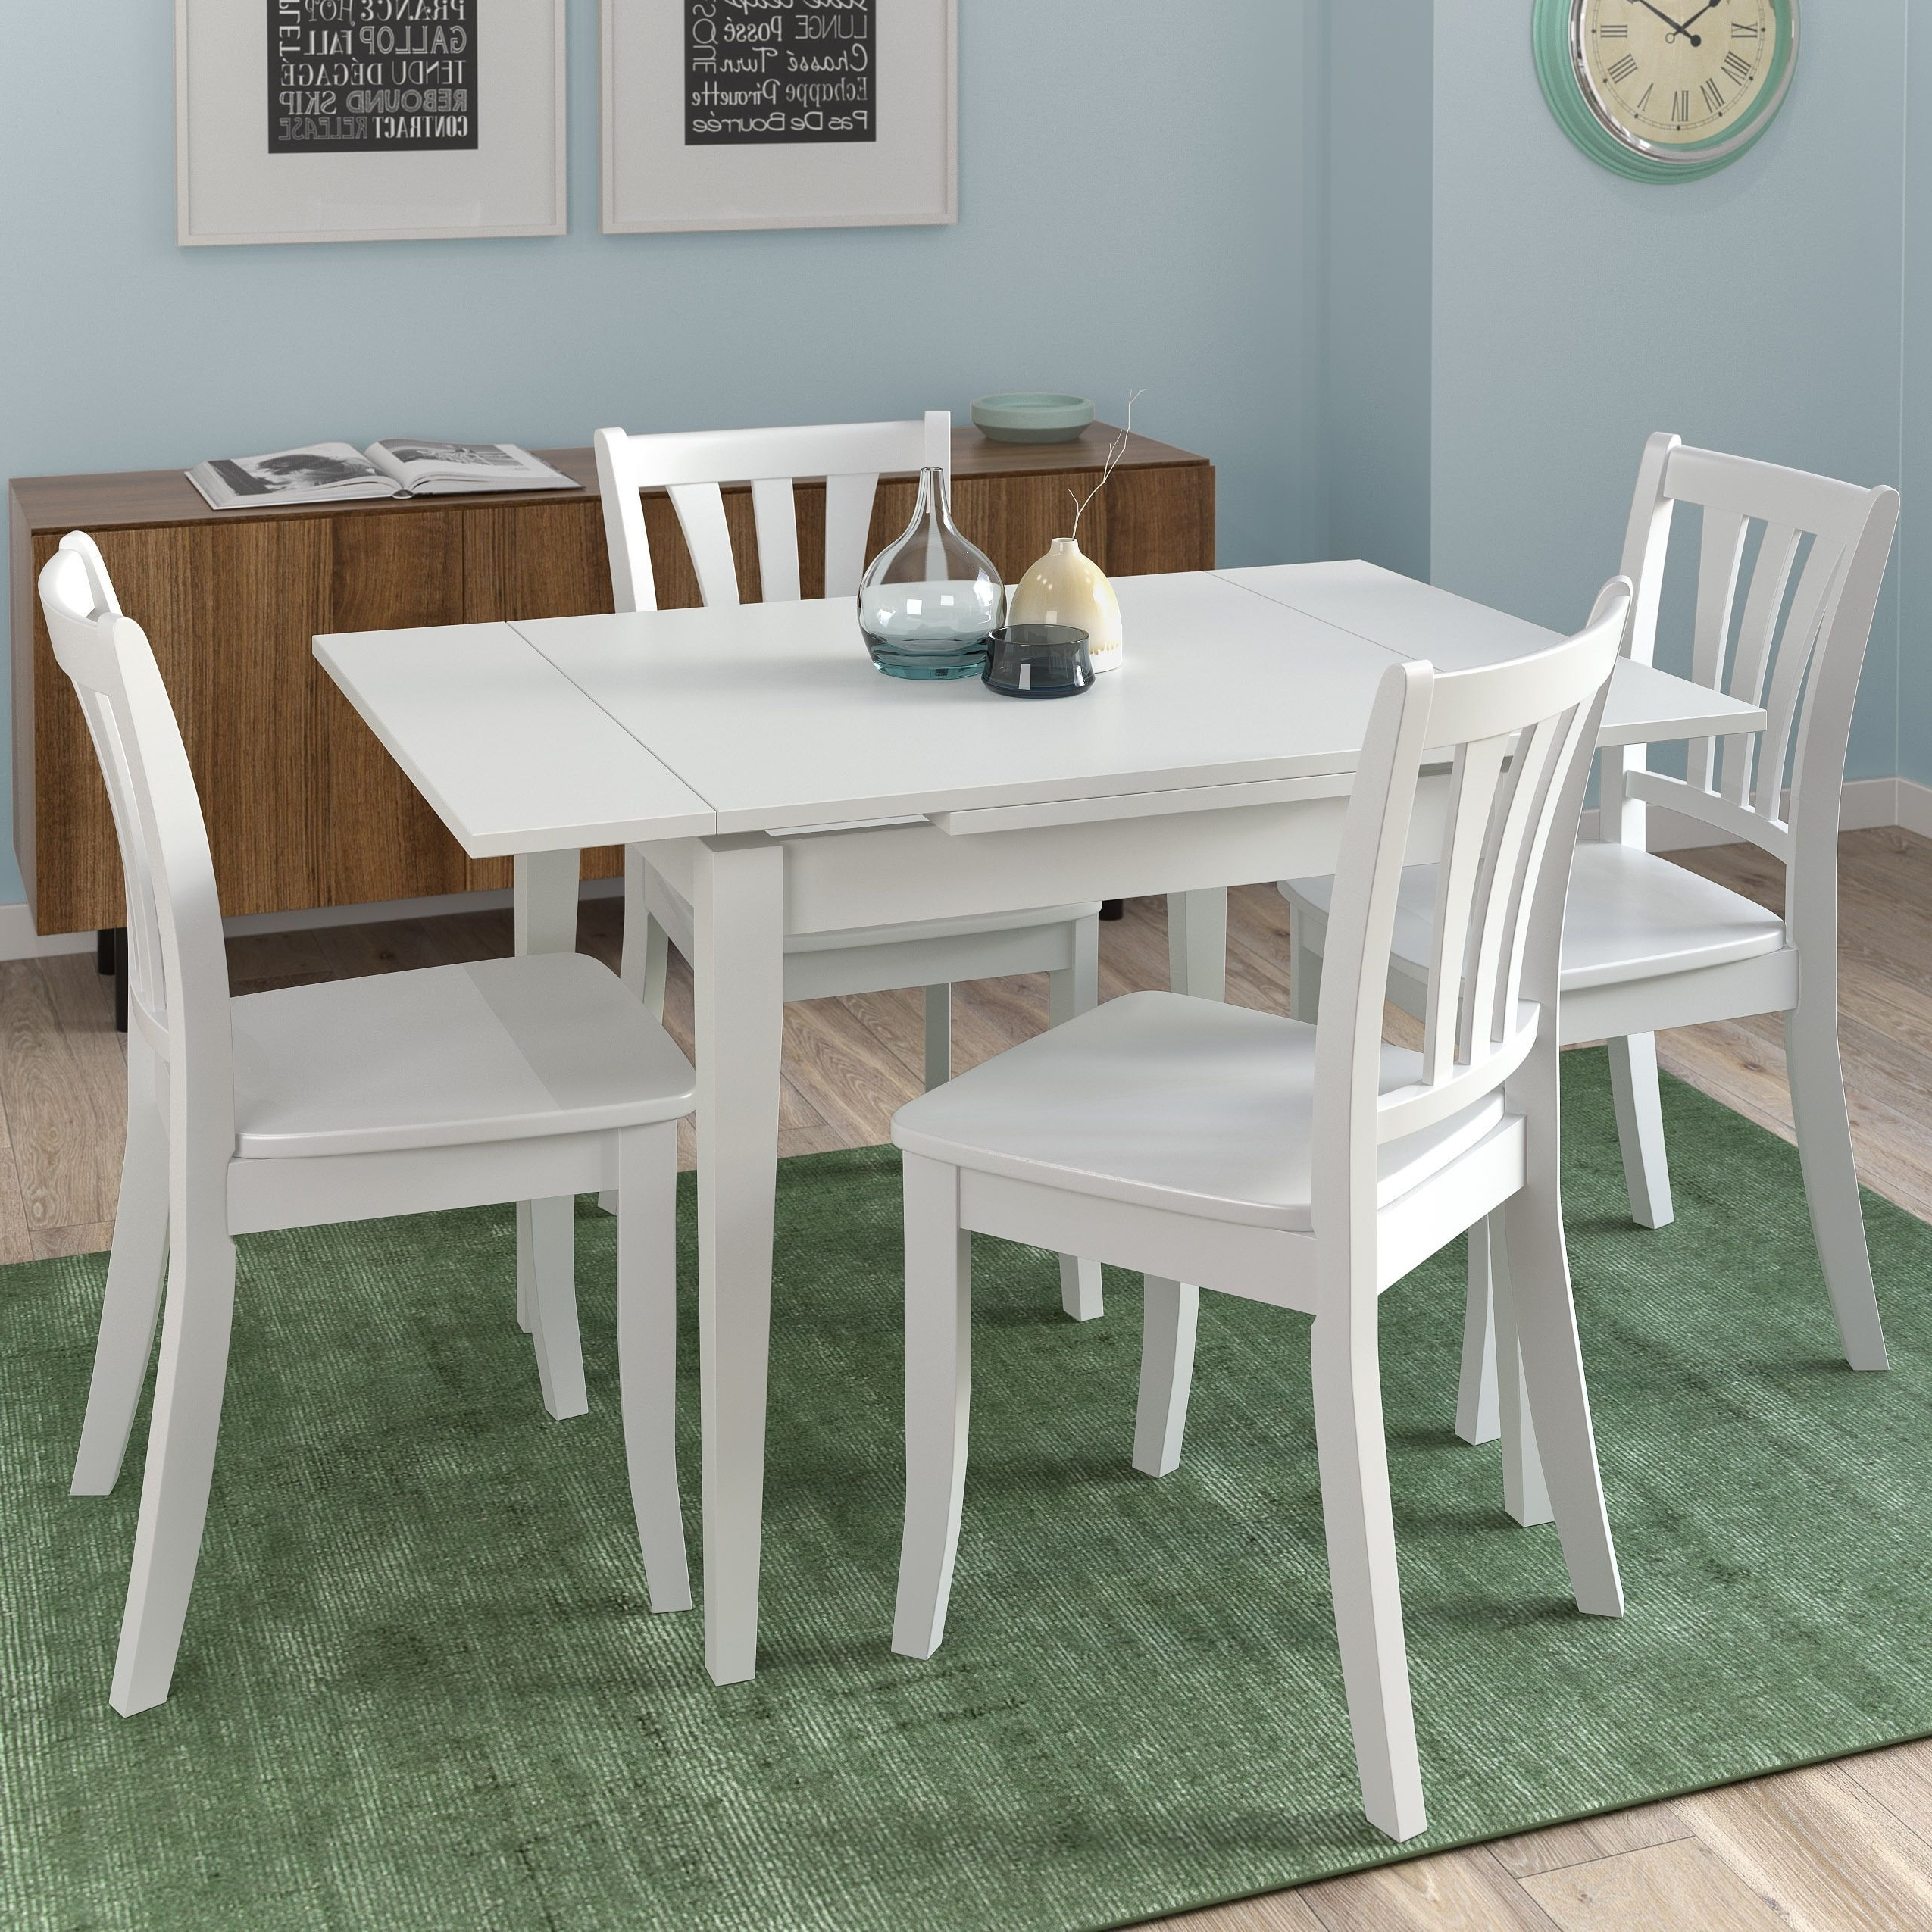 Latest Corliving Dillon White Wooden 5 Piece Extendable Dining Set (White With Regard To Extendable Dining Tables And Chairs (View 25 of 25)